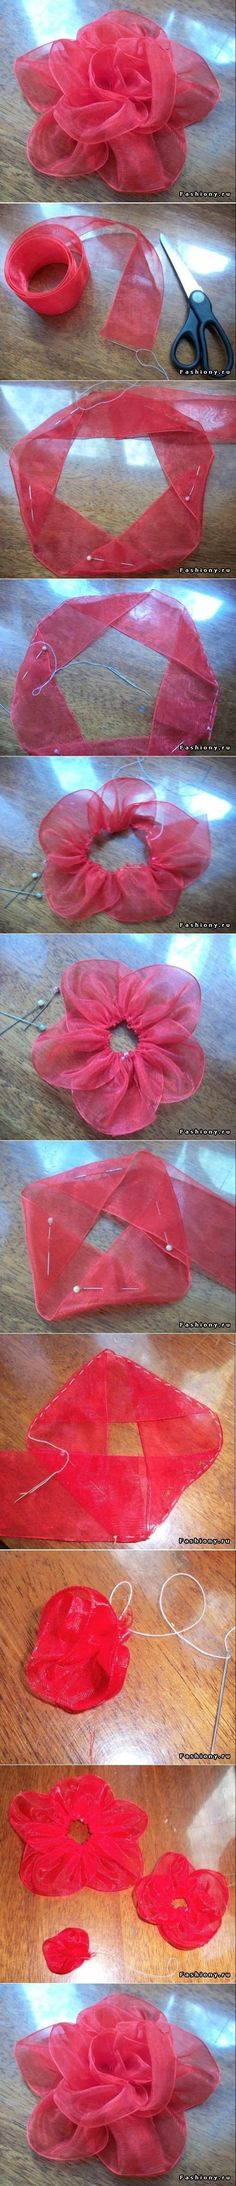 DIY Ribbon Tape Flower DIY Projects | UsefulDIY.com: